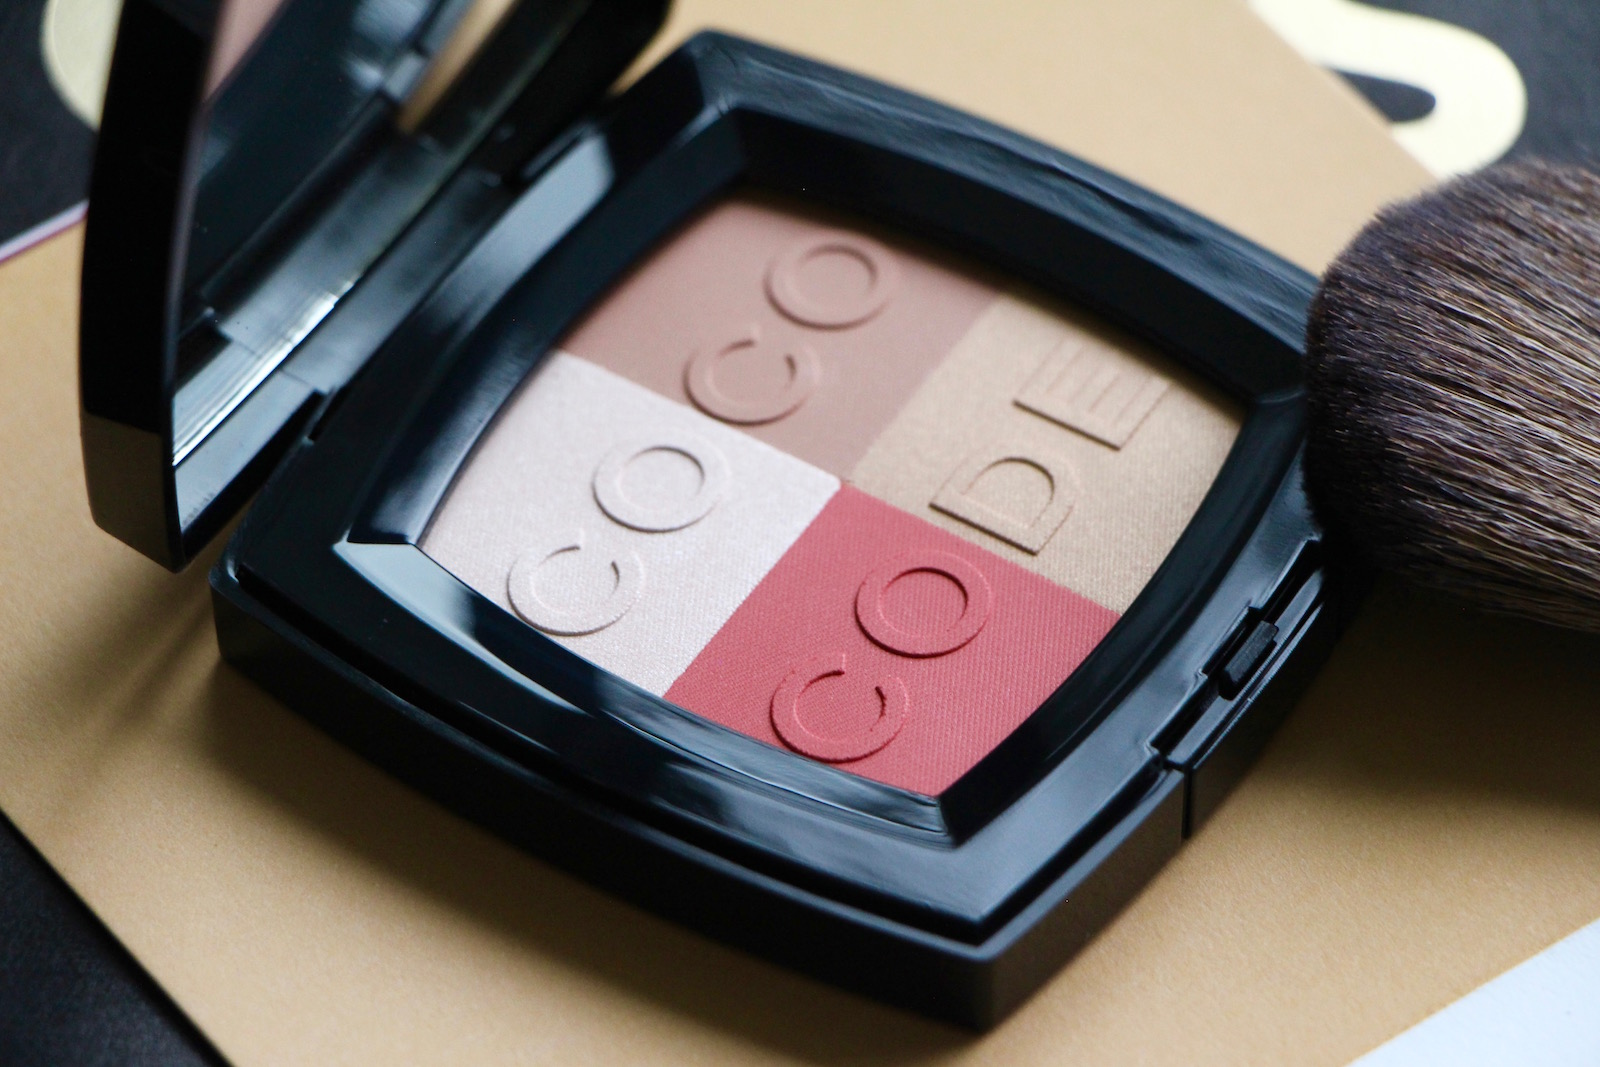 chanel codes blusher